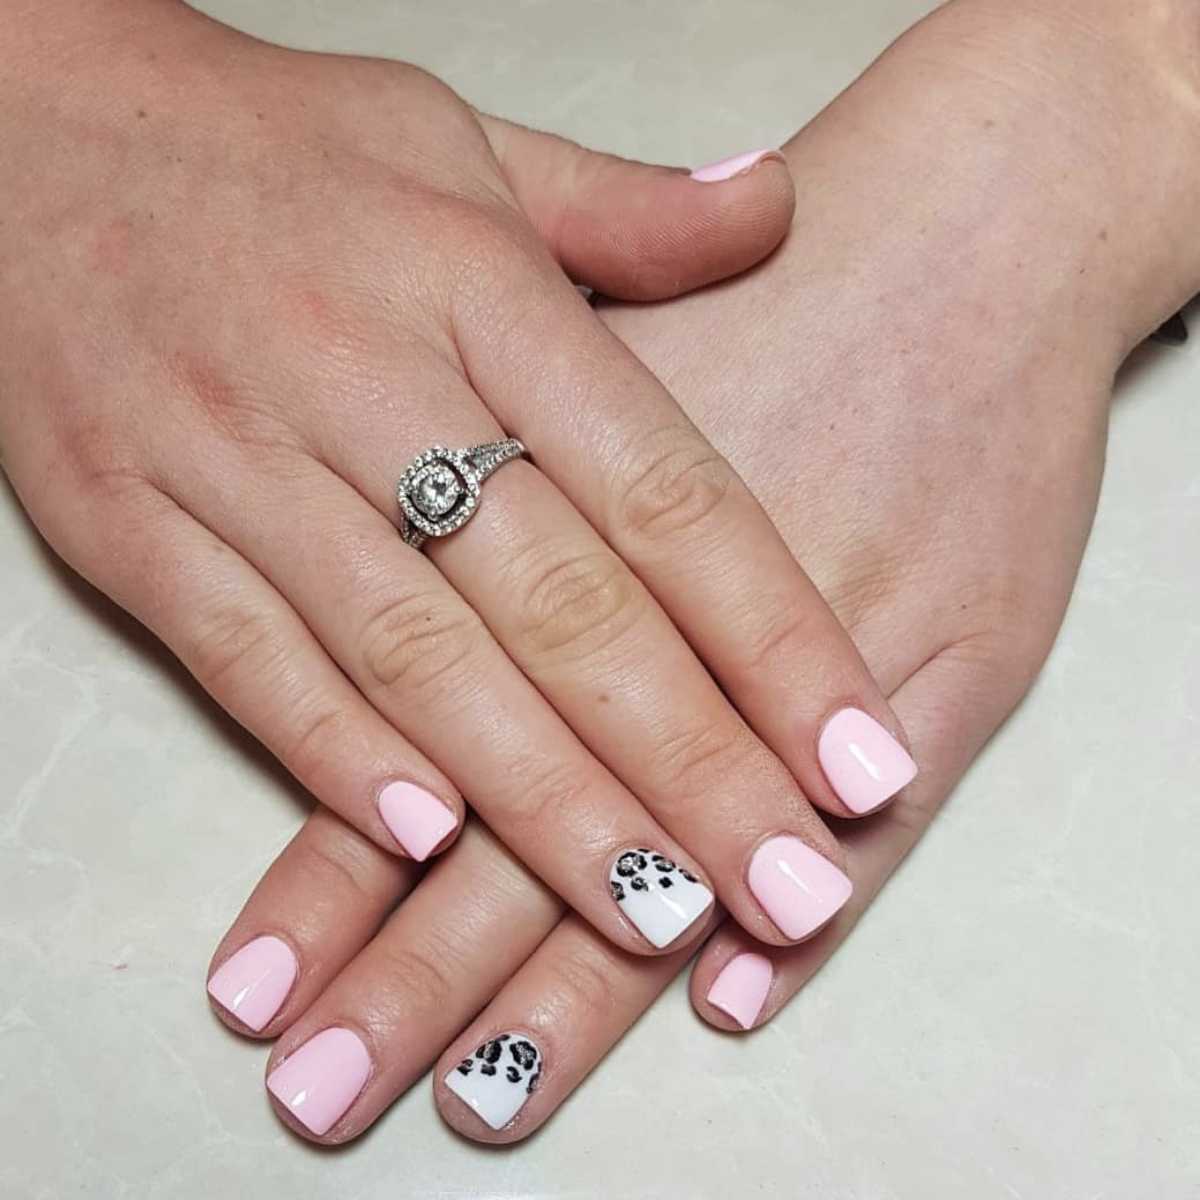 SNS with nail art